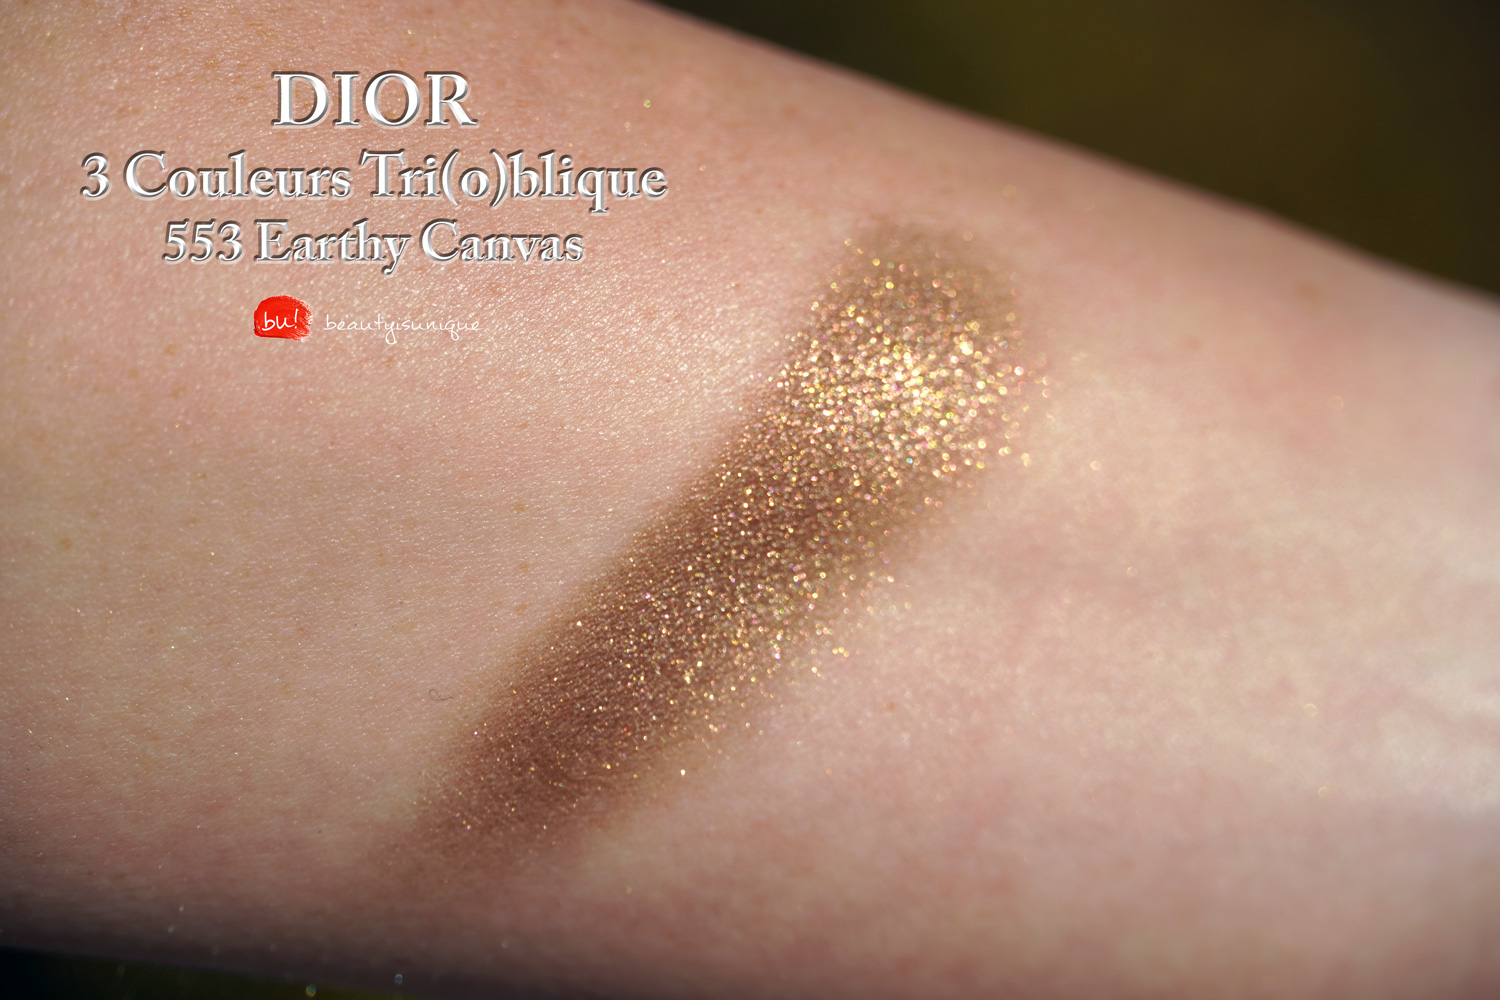 Dior-earthy-canvas-553-swatches